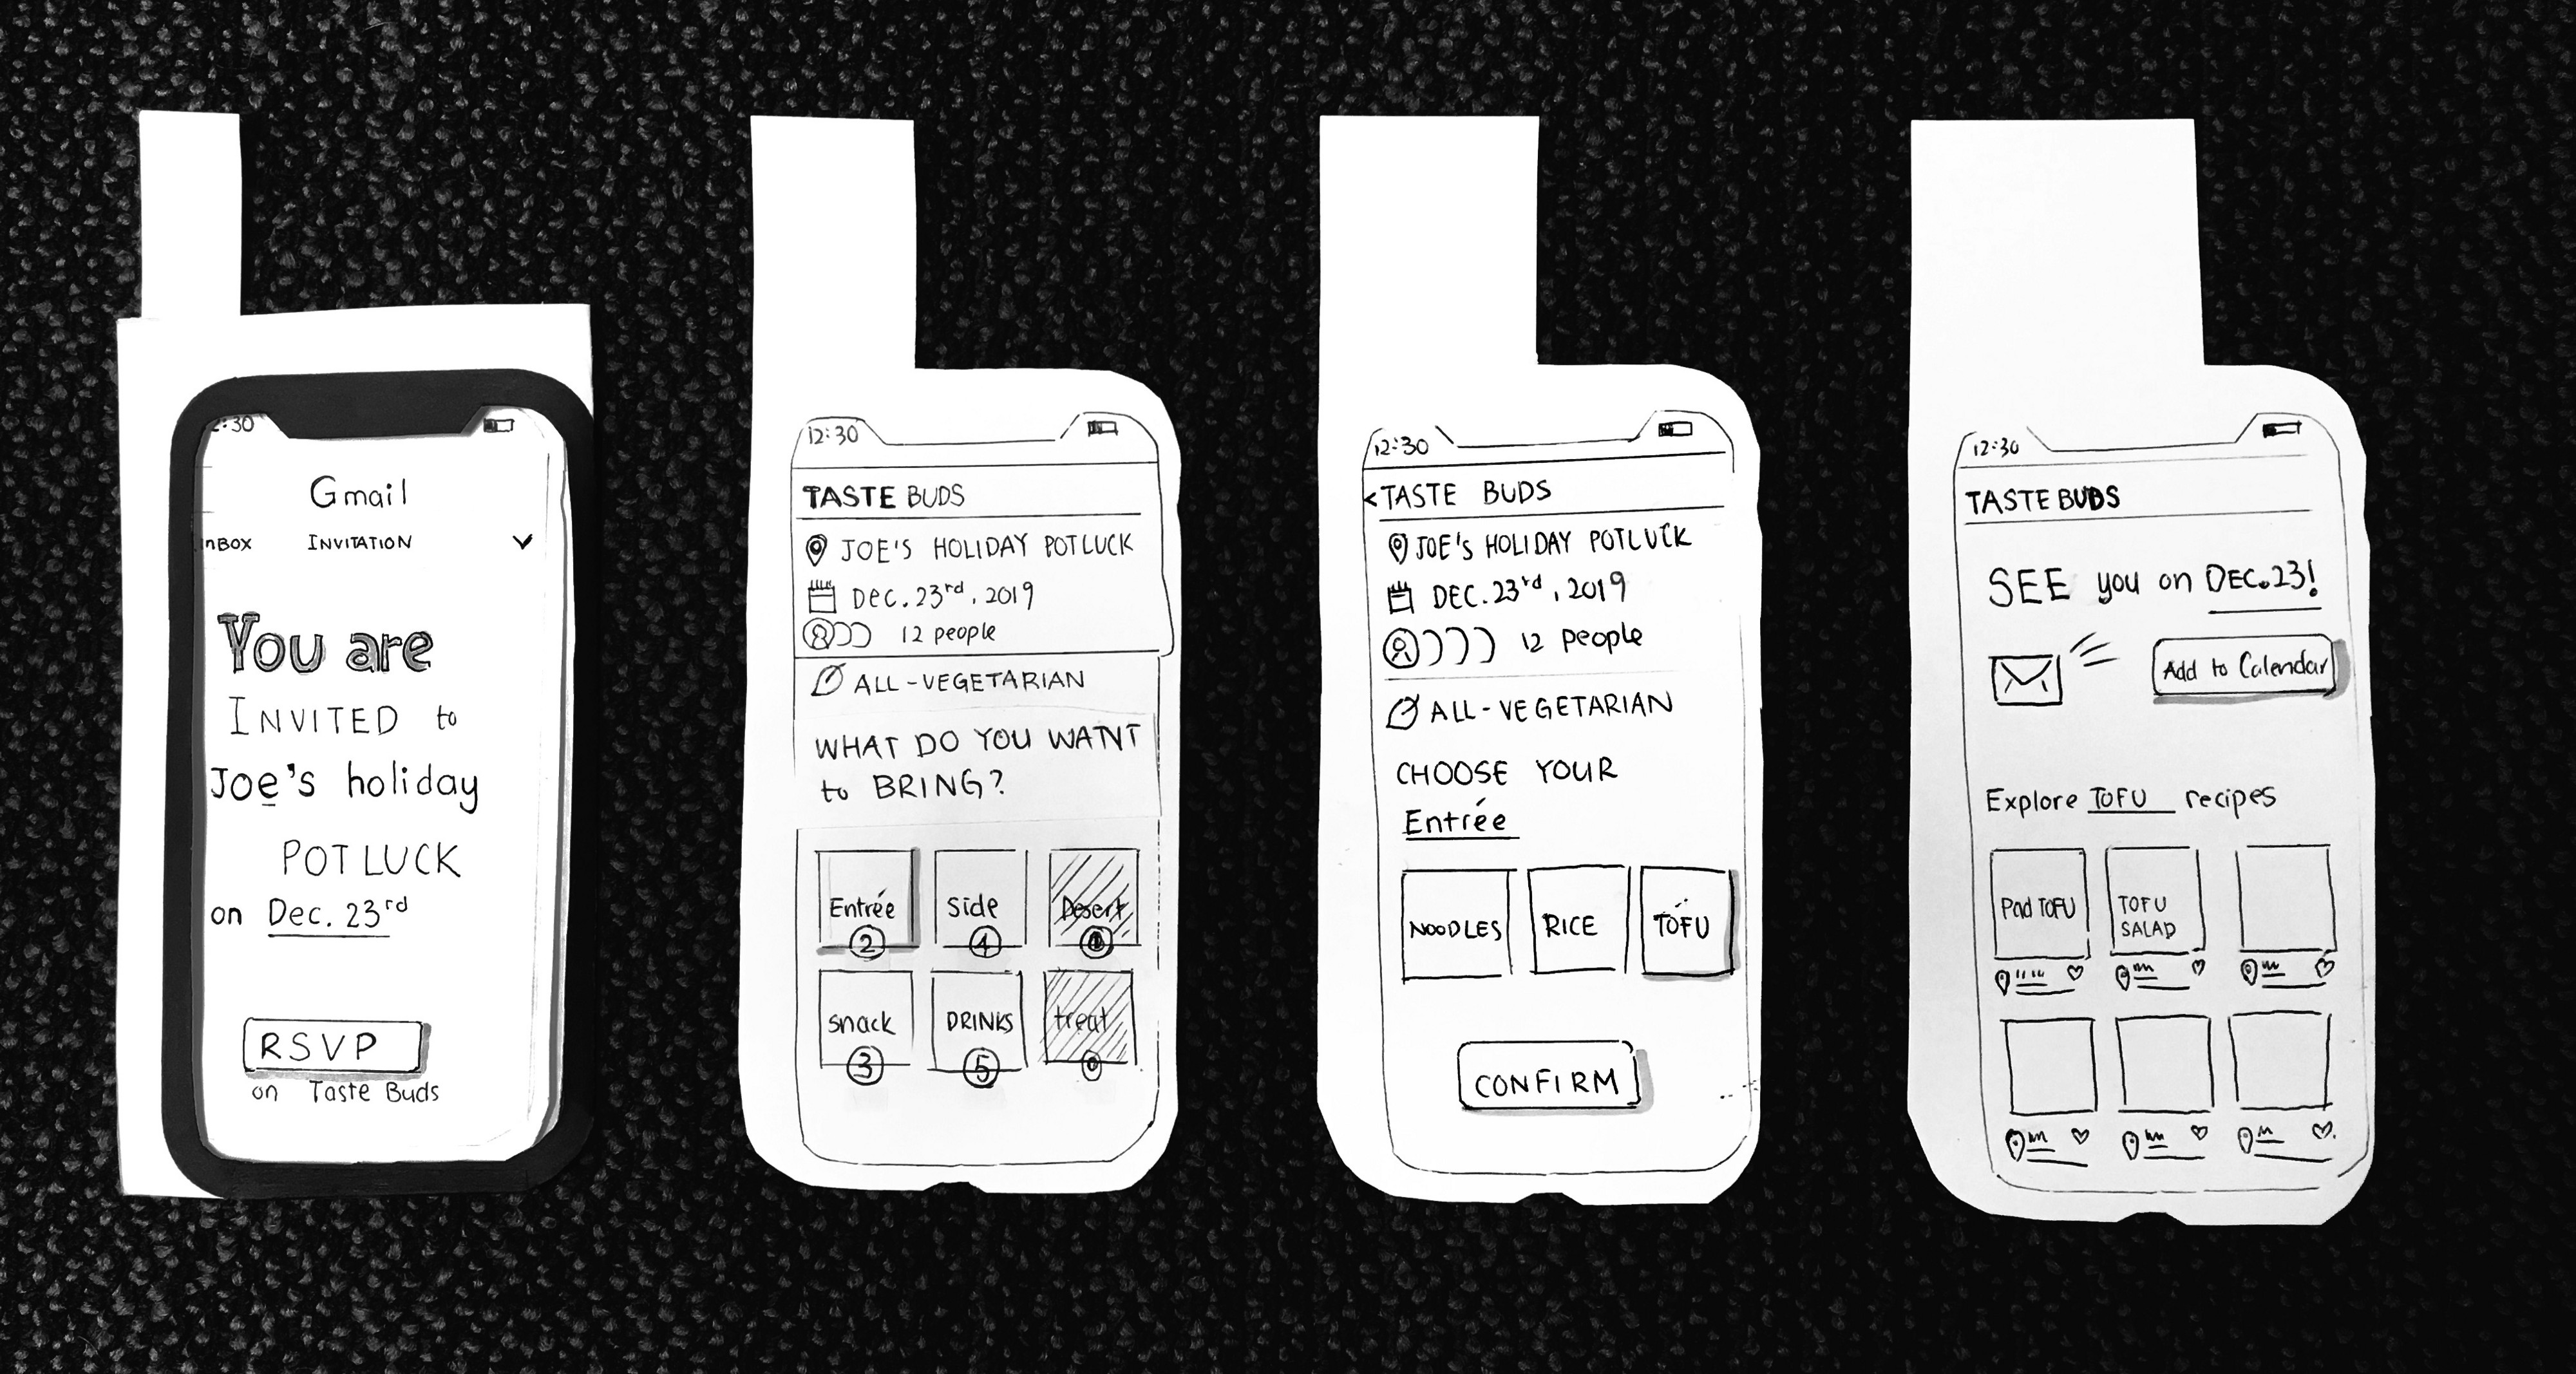 Four app screens have buttons and directions for the tester